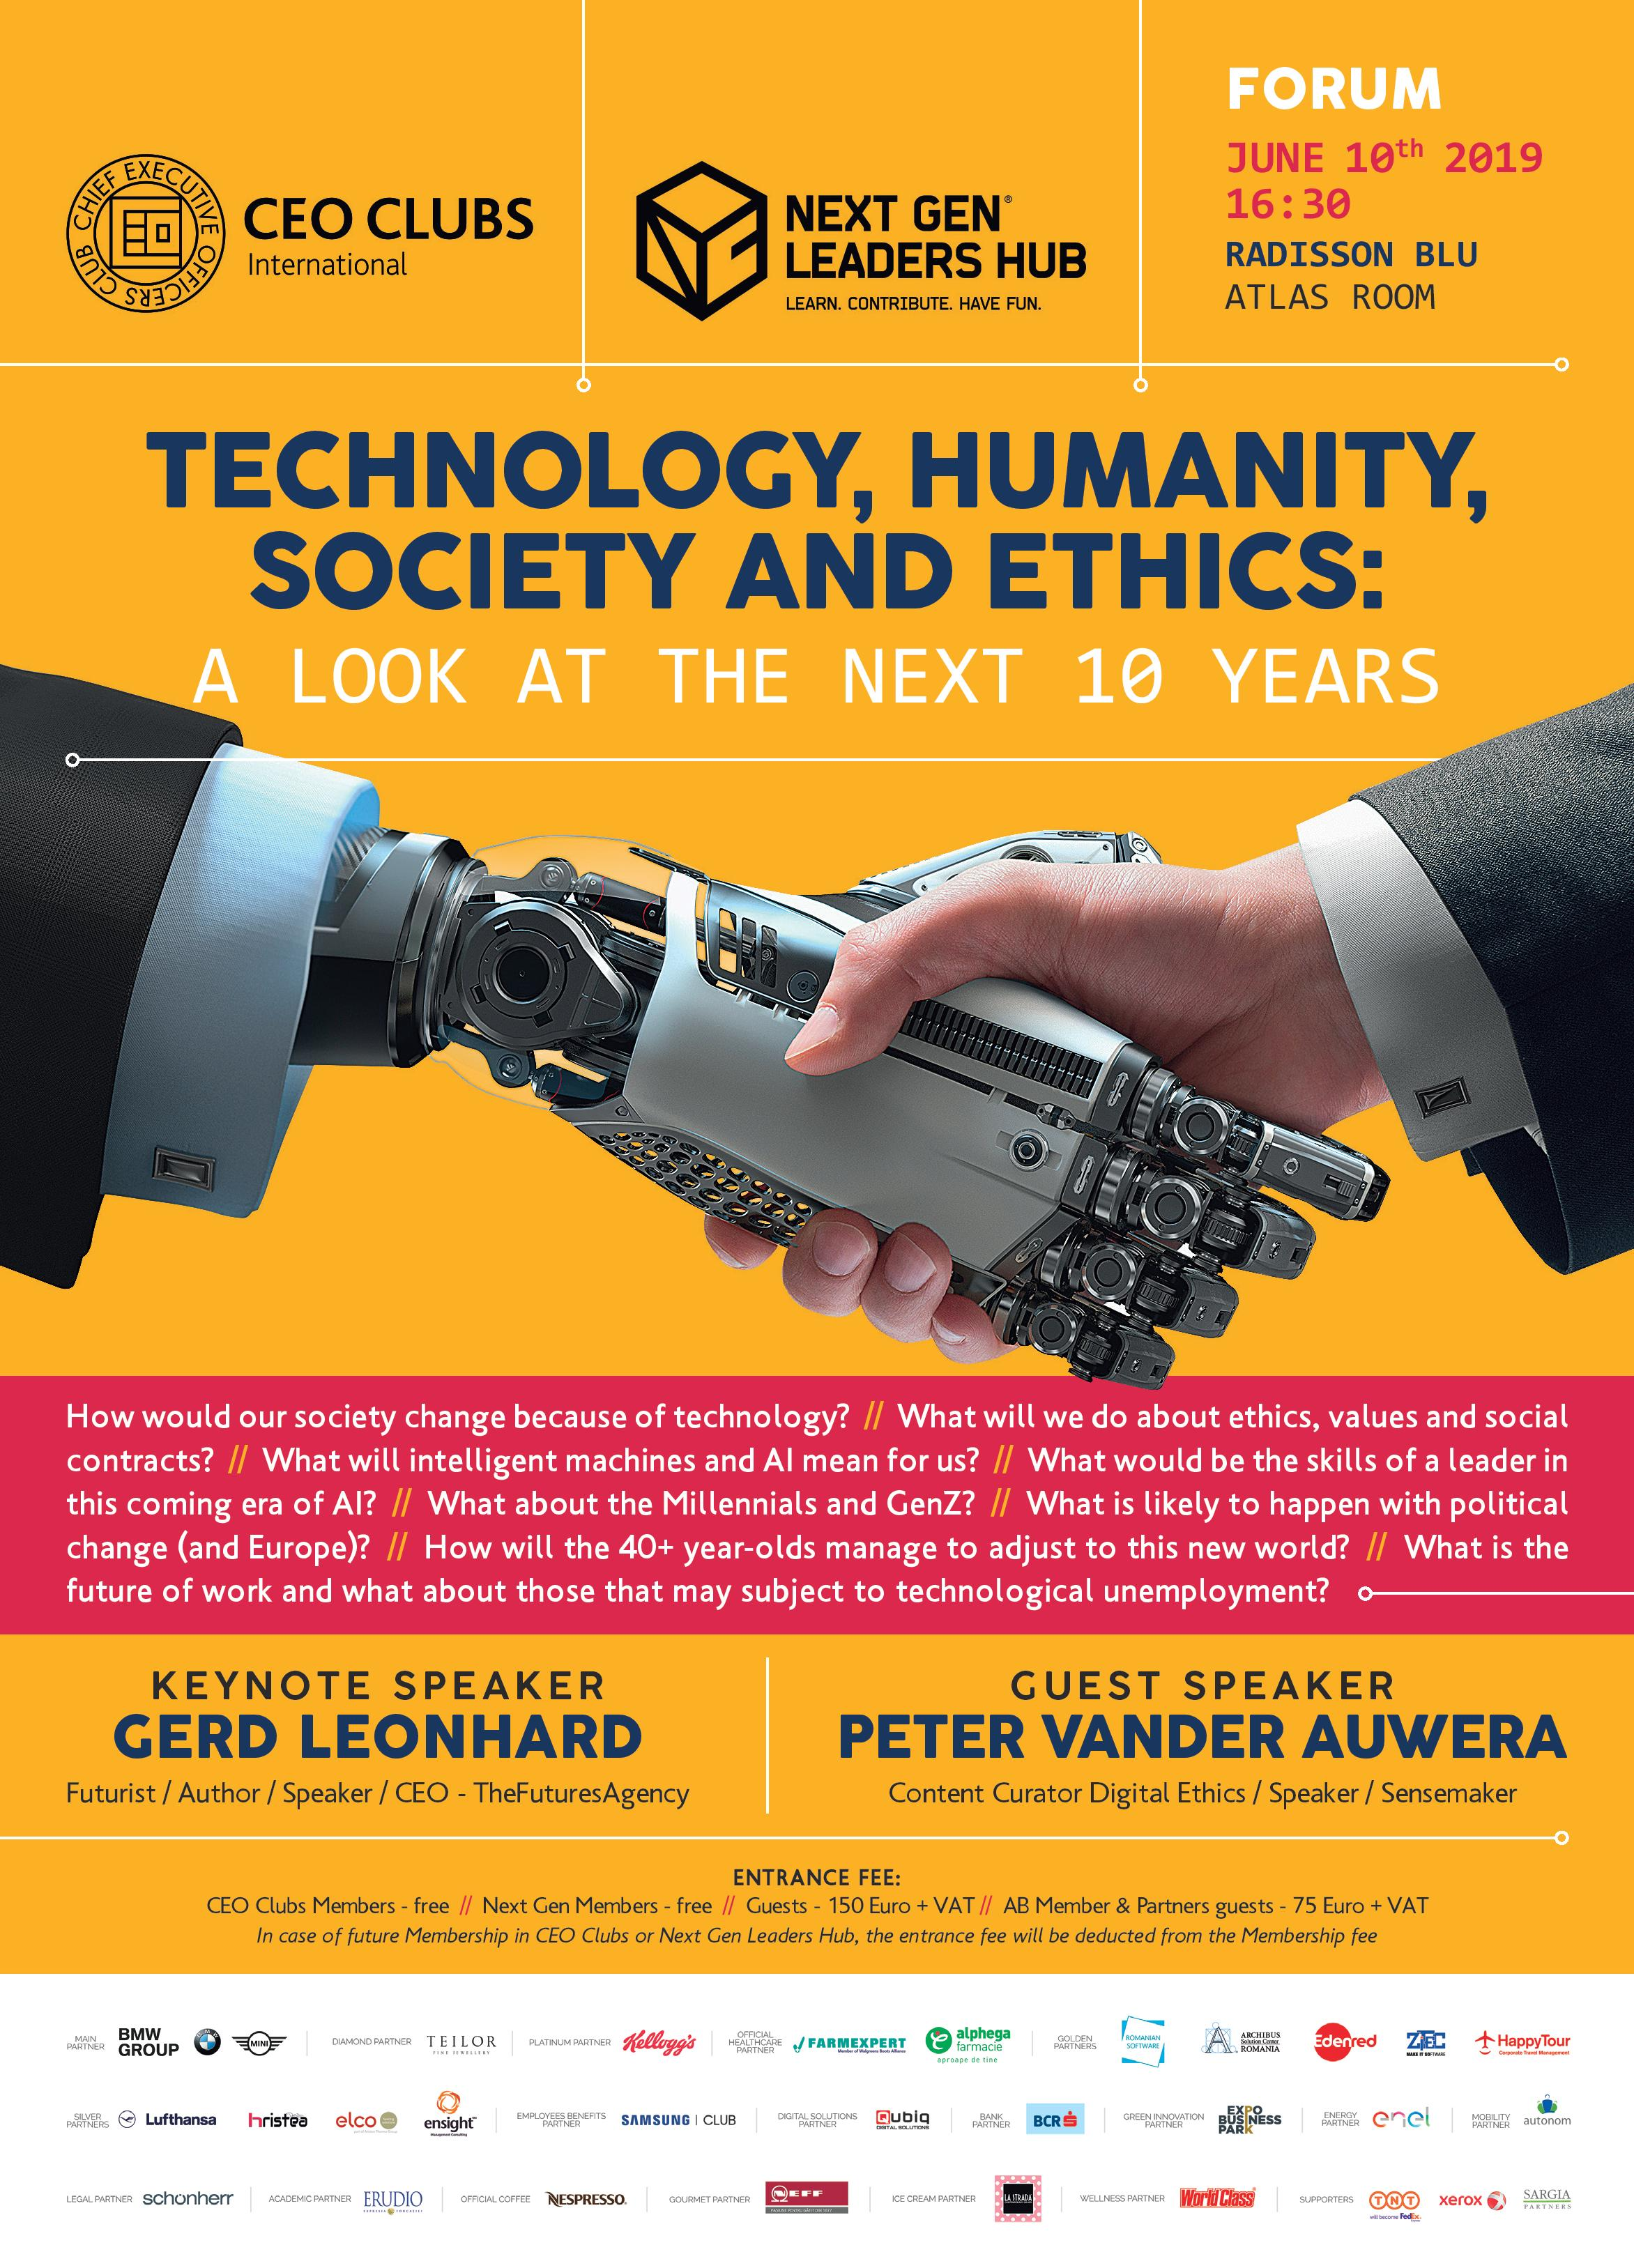 15th Forum: Technology, humanity, society and ethics: A look at the next 10 years